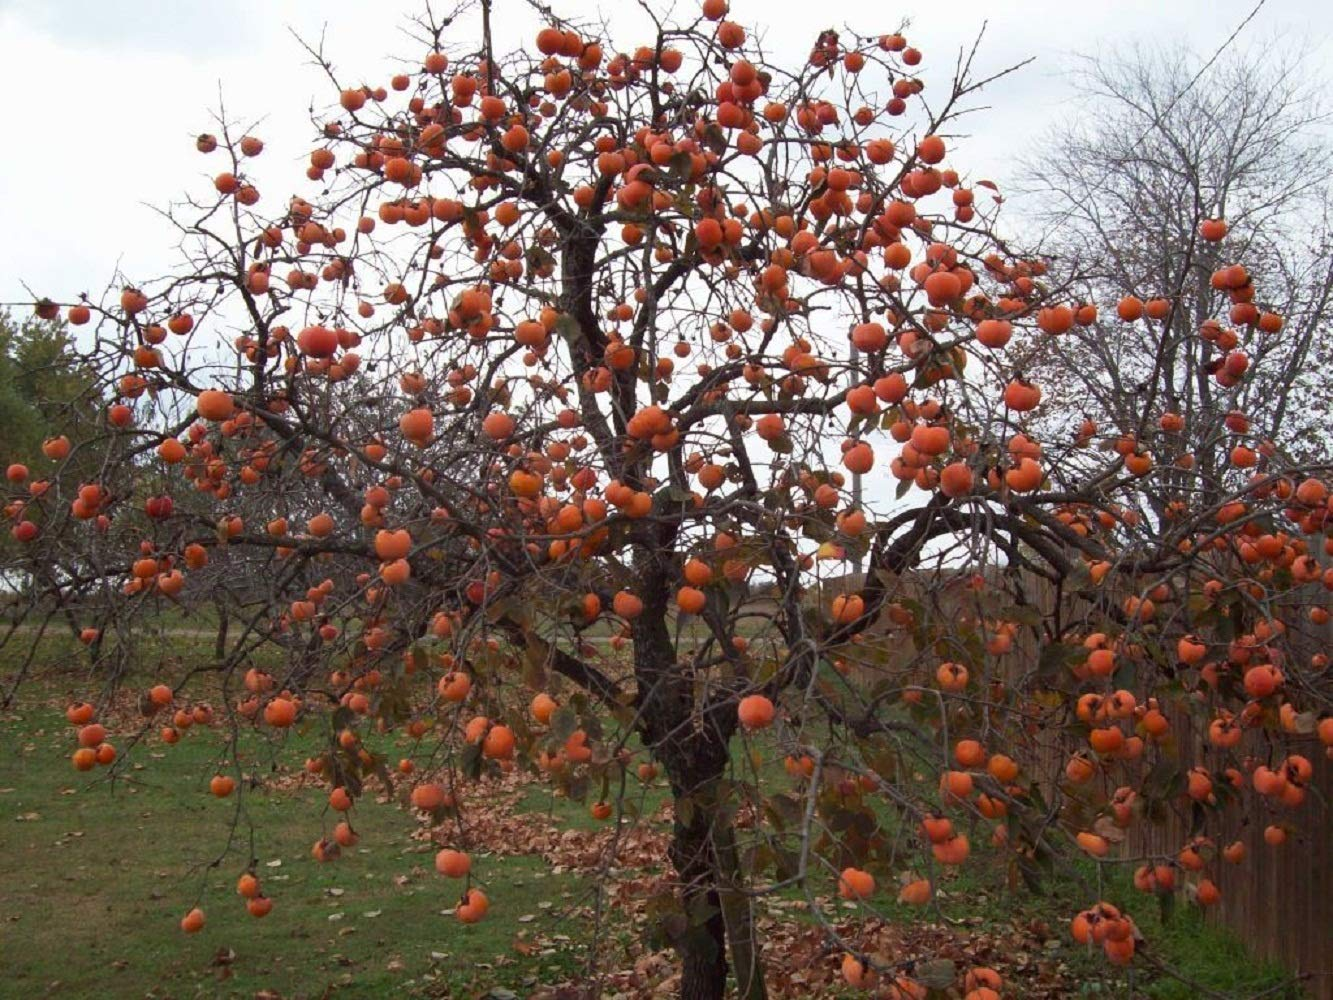 2 Gallon Potted Plant Fuyu Persimmon Tree V2 by Iniloplant (Image #2)